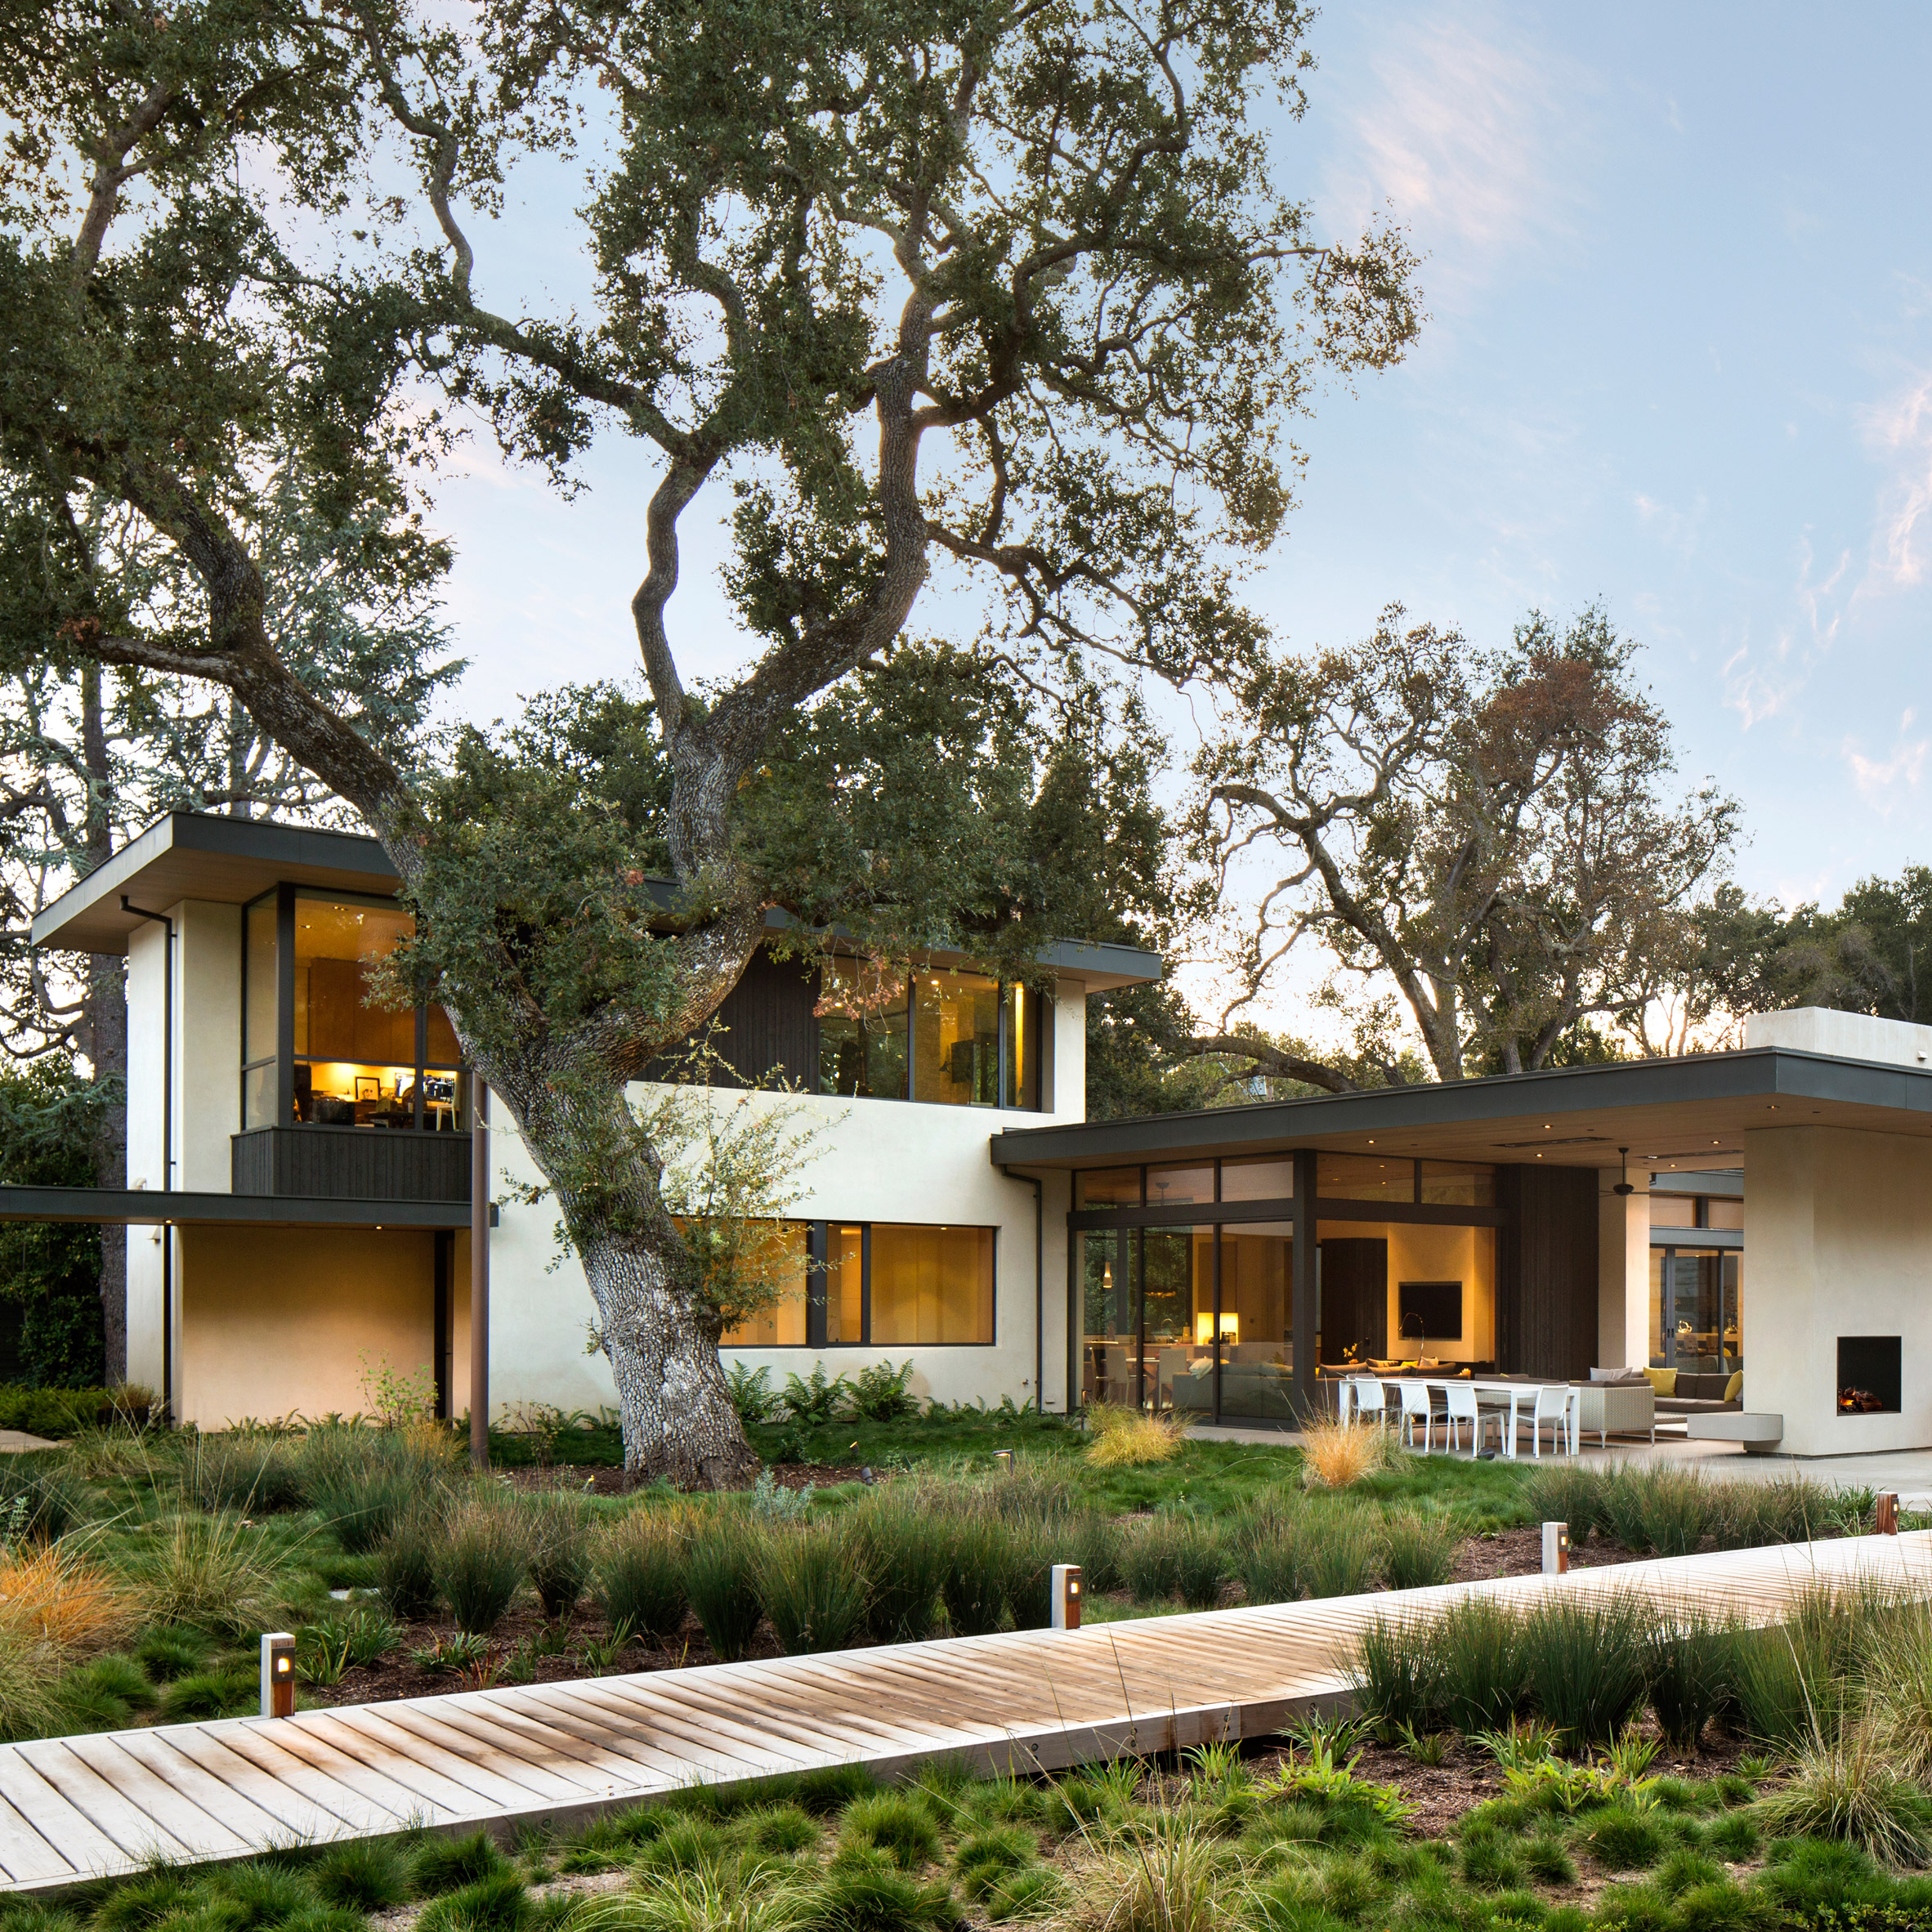 Northern California home by Arcanum Architecture sprawls along